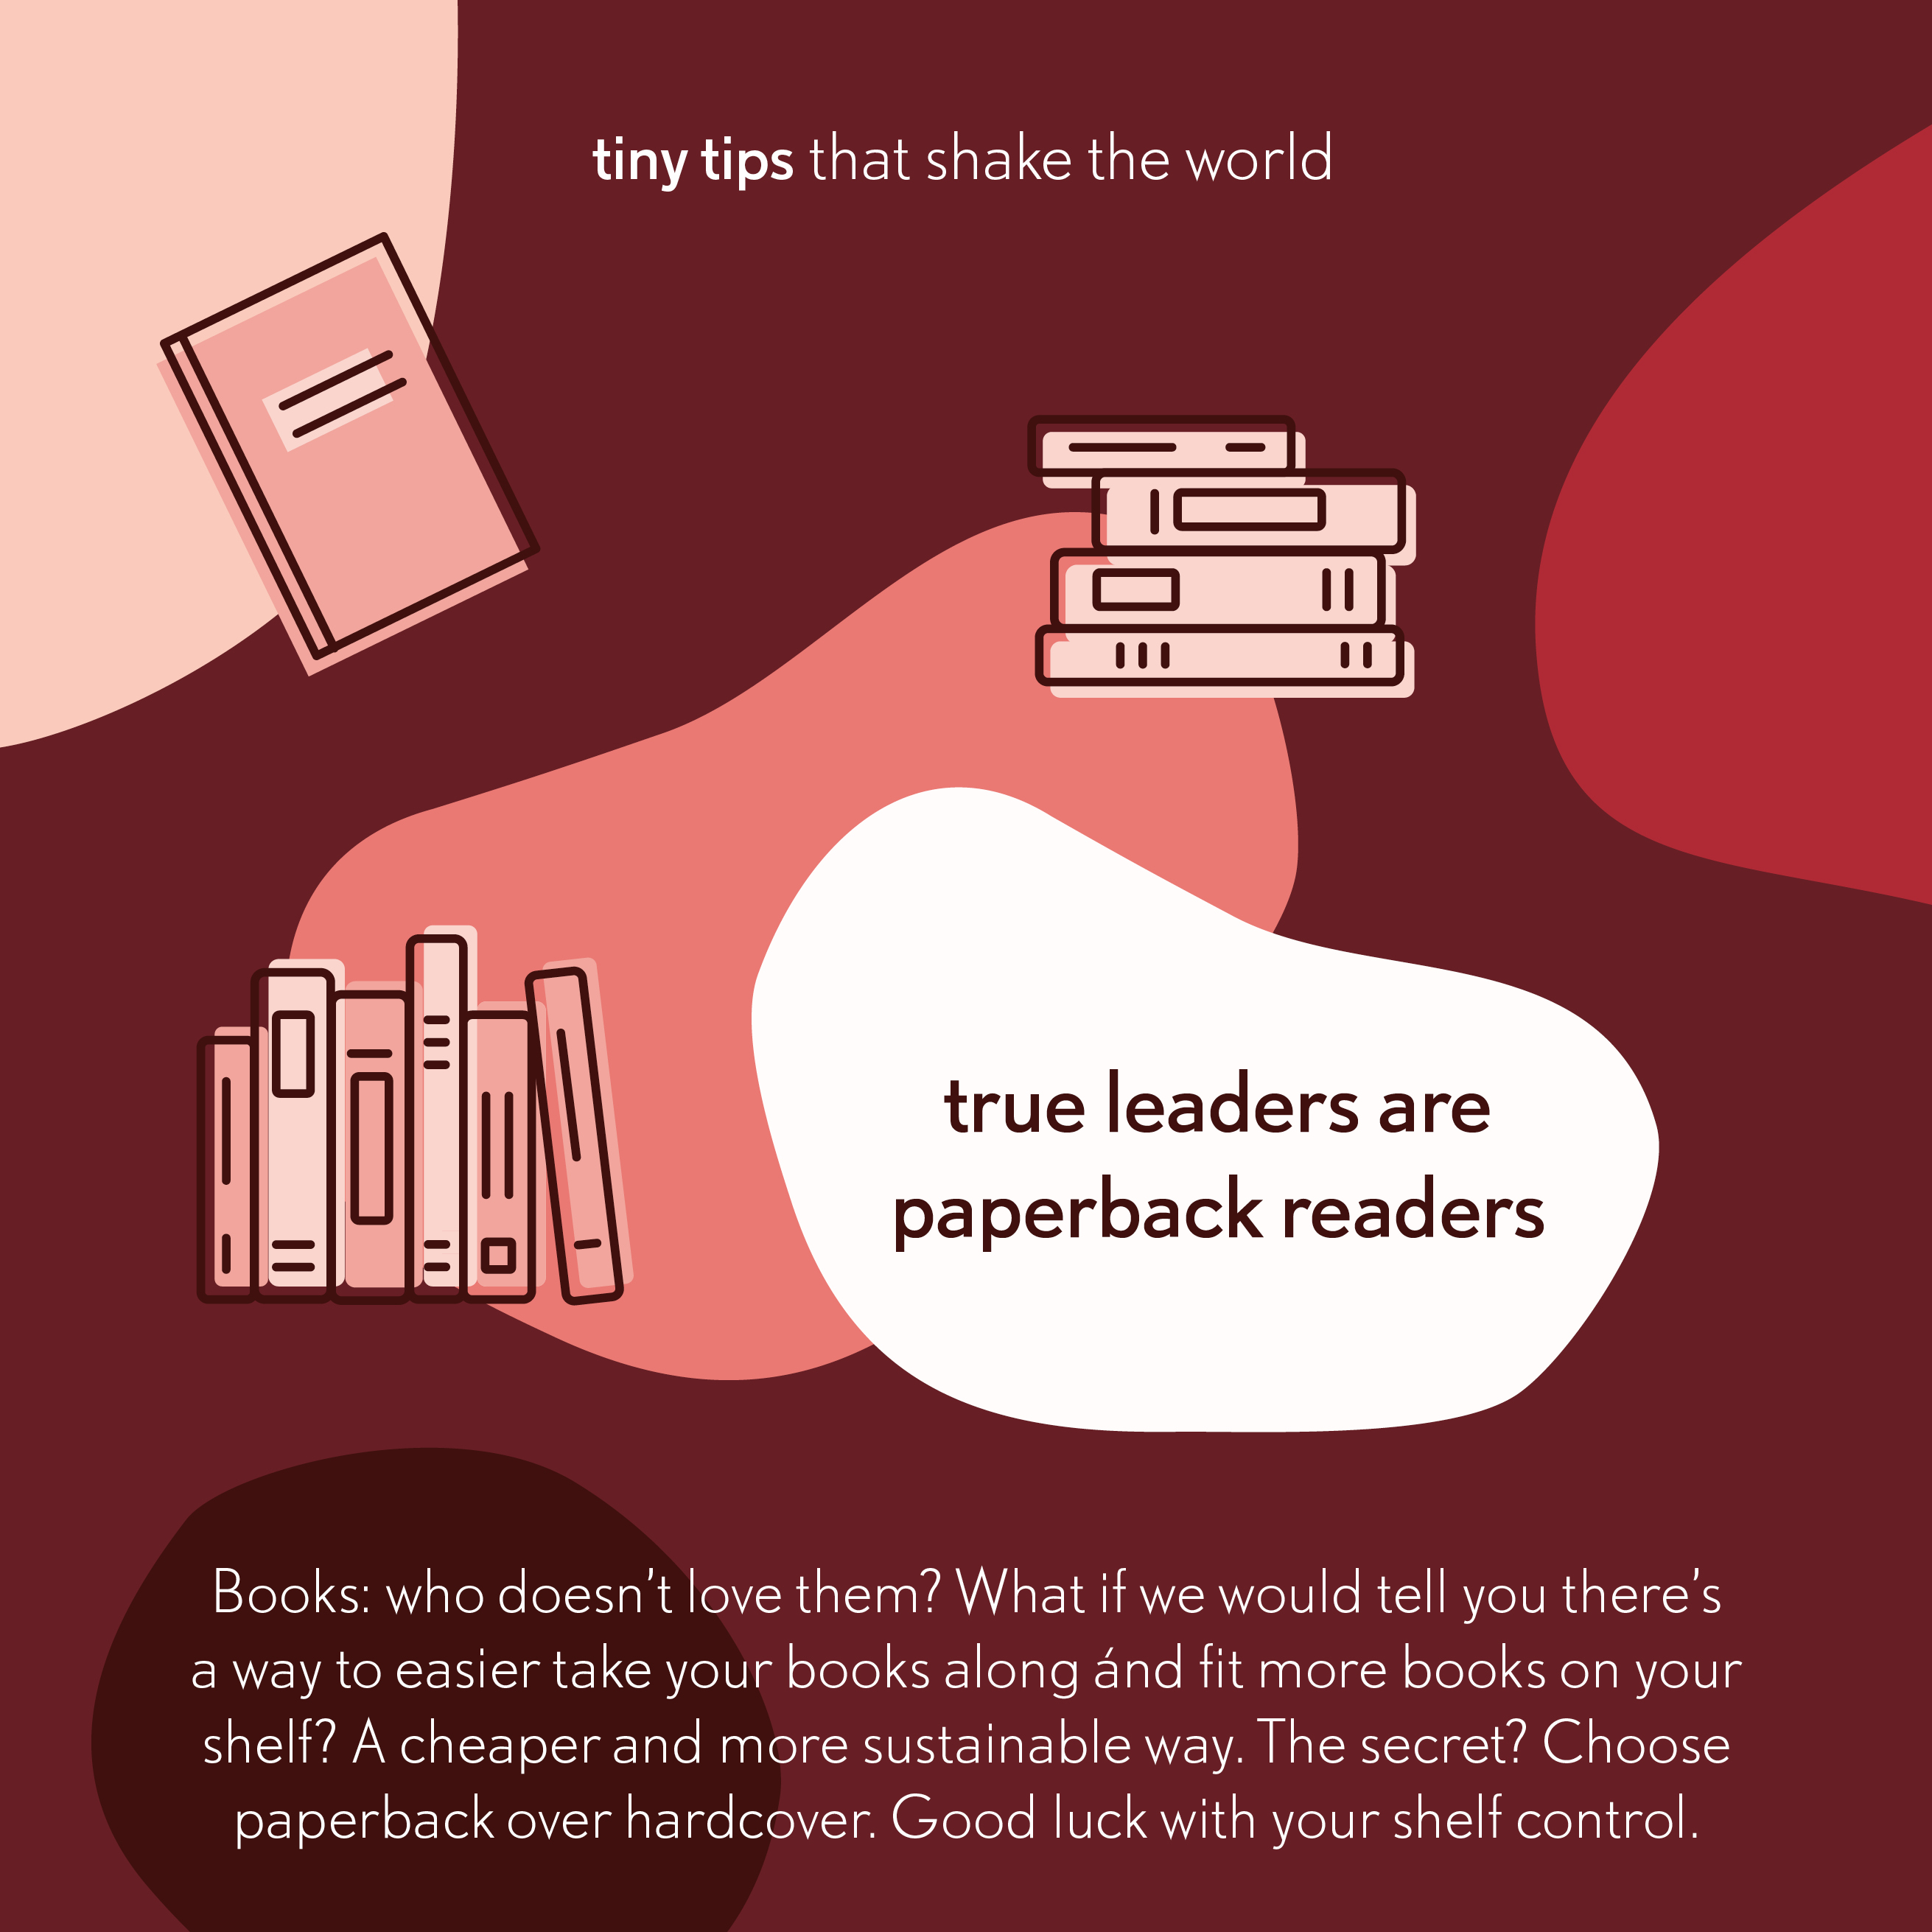 True leaders are paperback readers - Tiny tips that shake the world